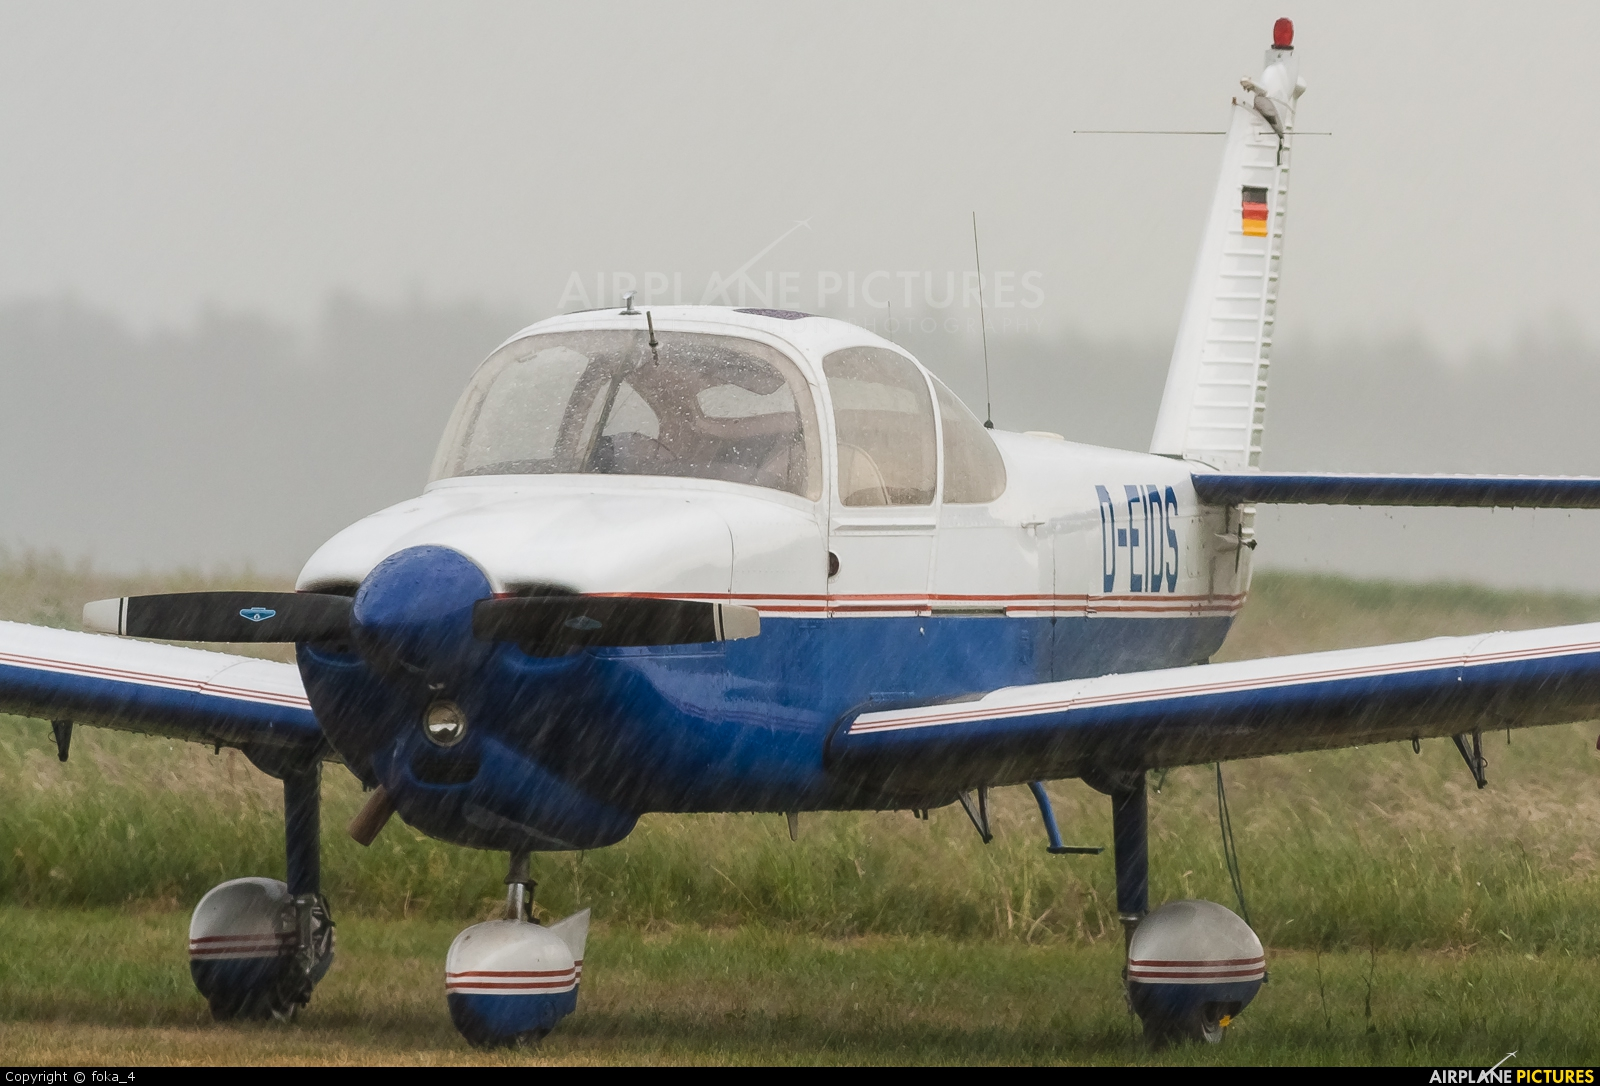 Private D-EIDS aircraft at Marburg-Schönstadt